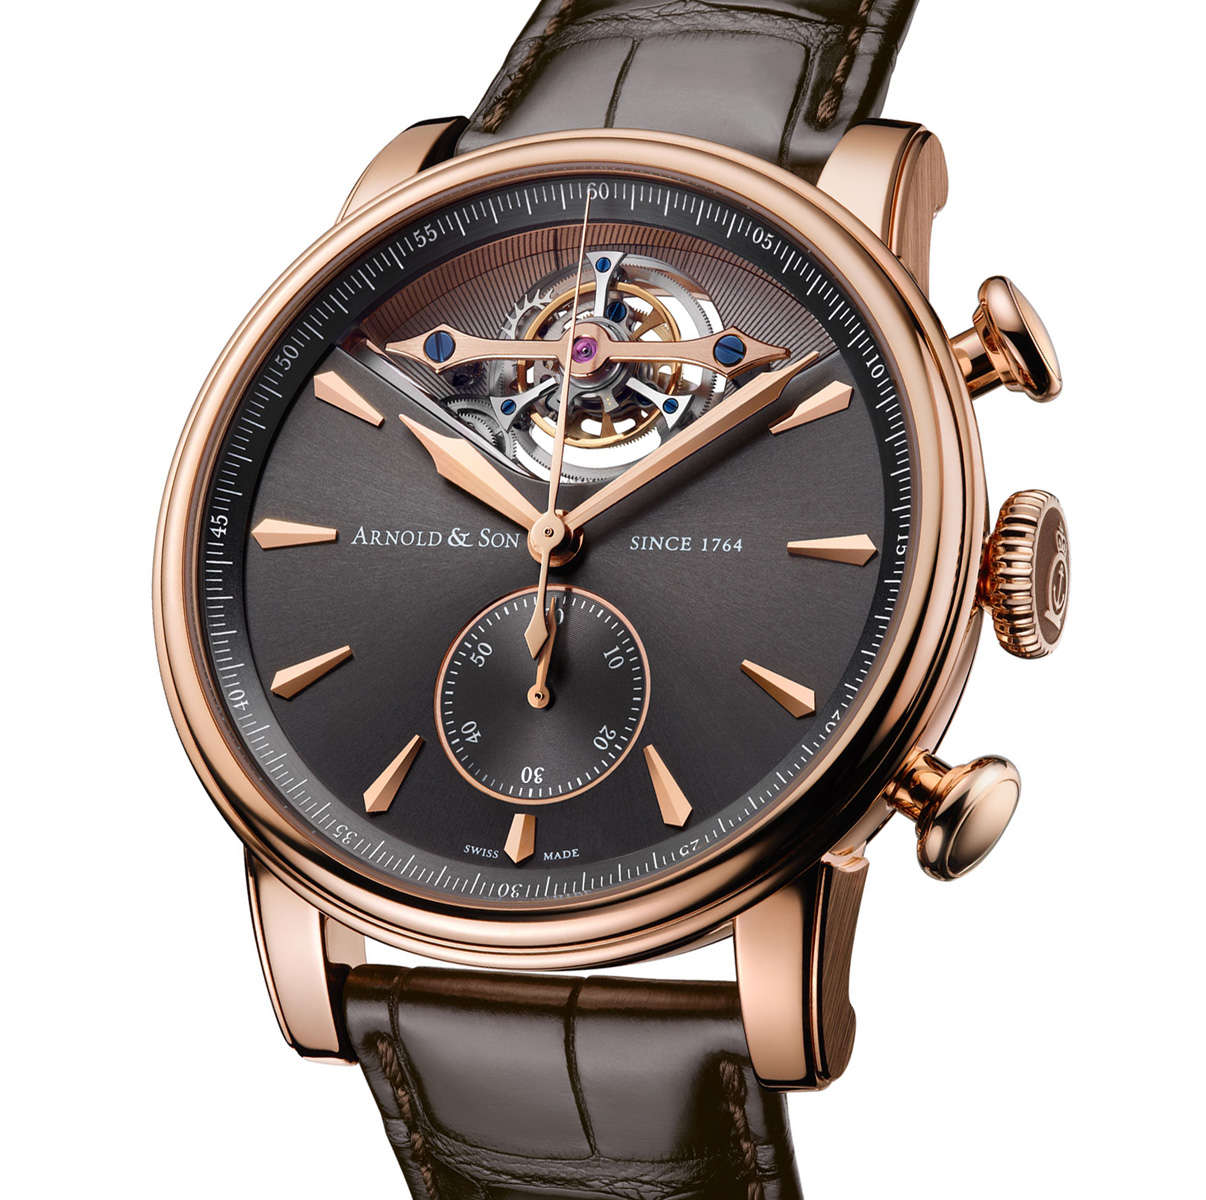 Arnold-26-Son-Royal-TEC1-Tourbillon-Chronograph-Baselworld-2014-281291